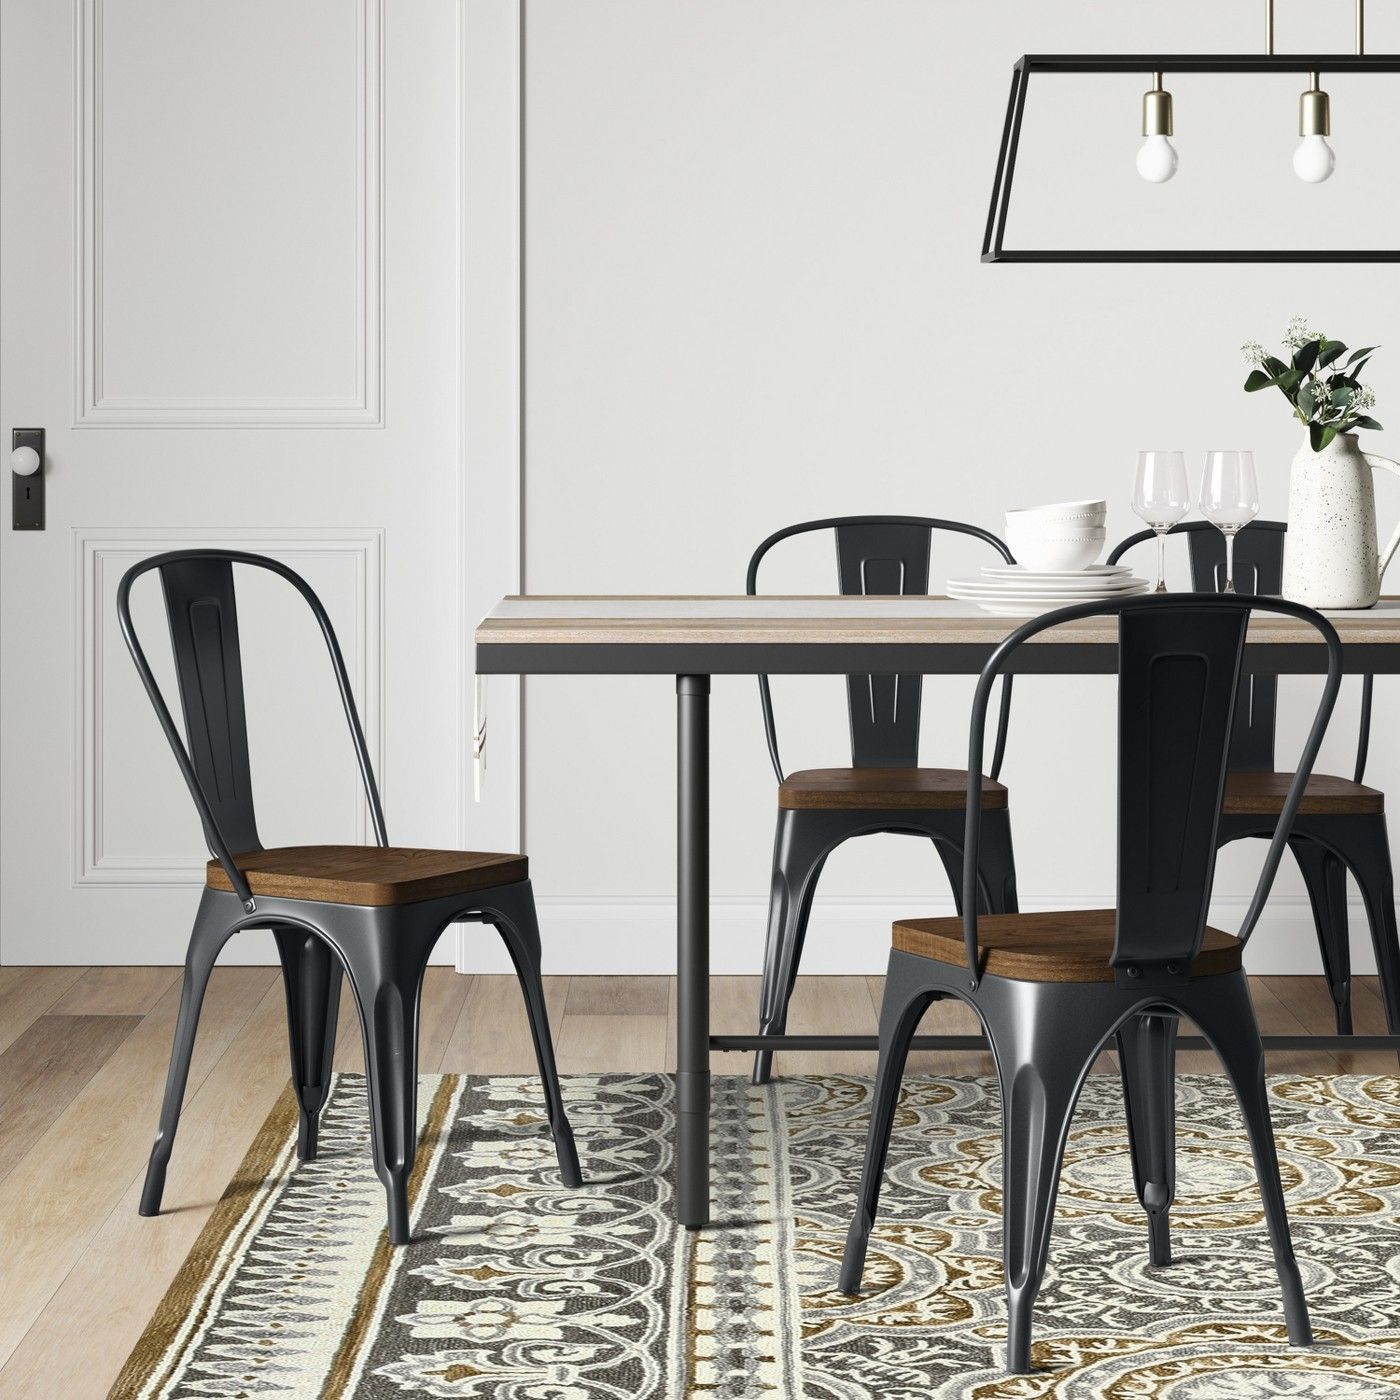 Carlisle High Back Dining Chair Threshold Dining Table Black